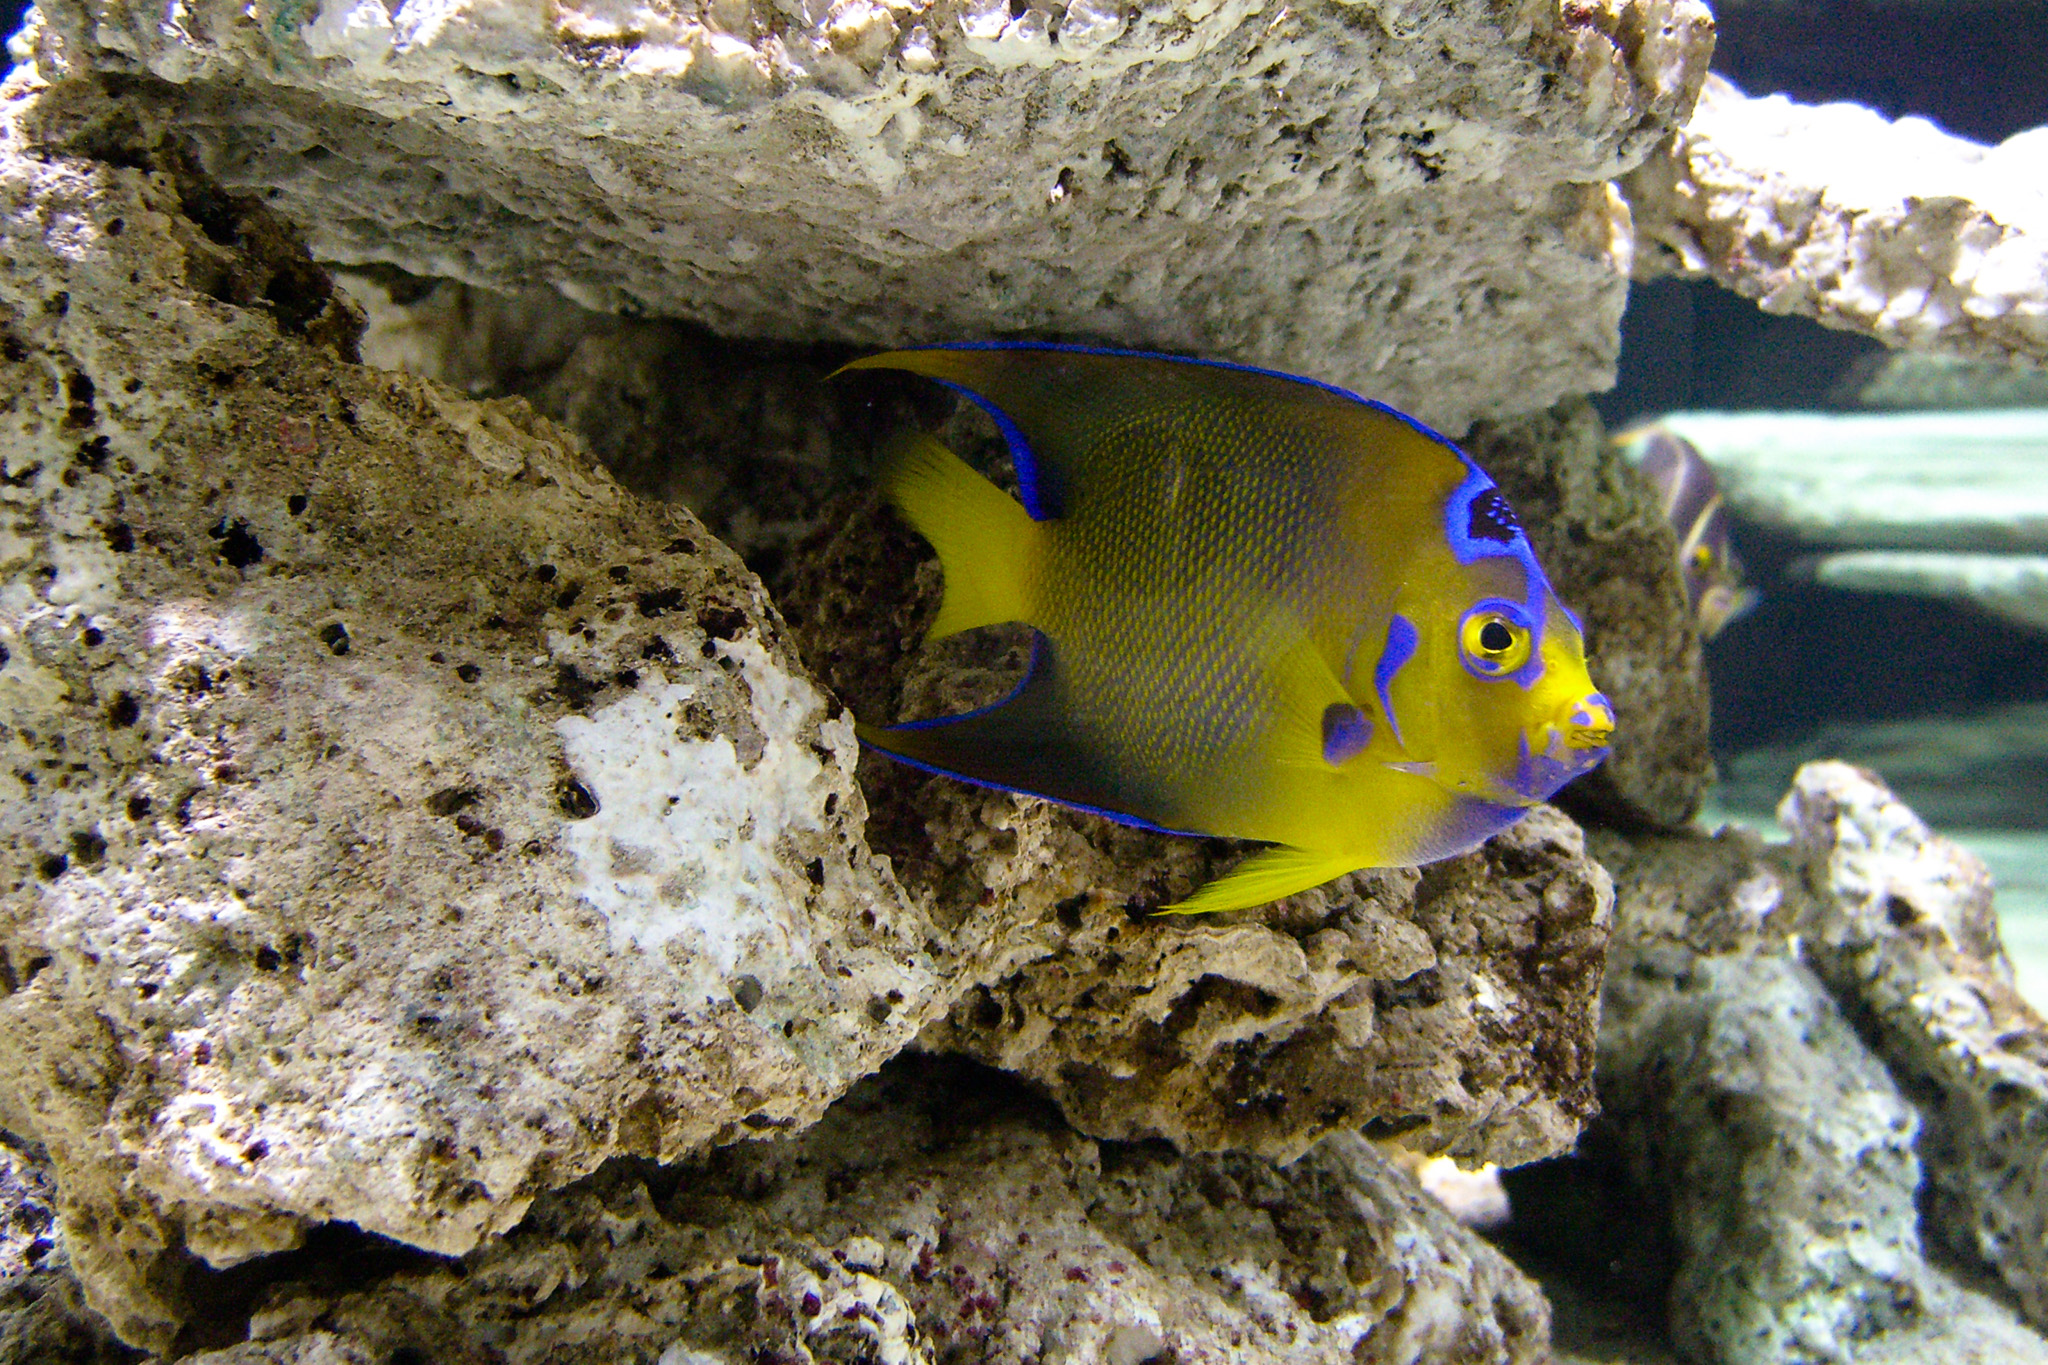 Fish aquarium utah - We Ve Got Access To A Great Range Of Fish And Coral And Can Even Do Outdoor Ponds And Koi For The Summer Months Enjoy The Photos